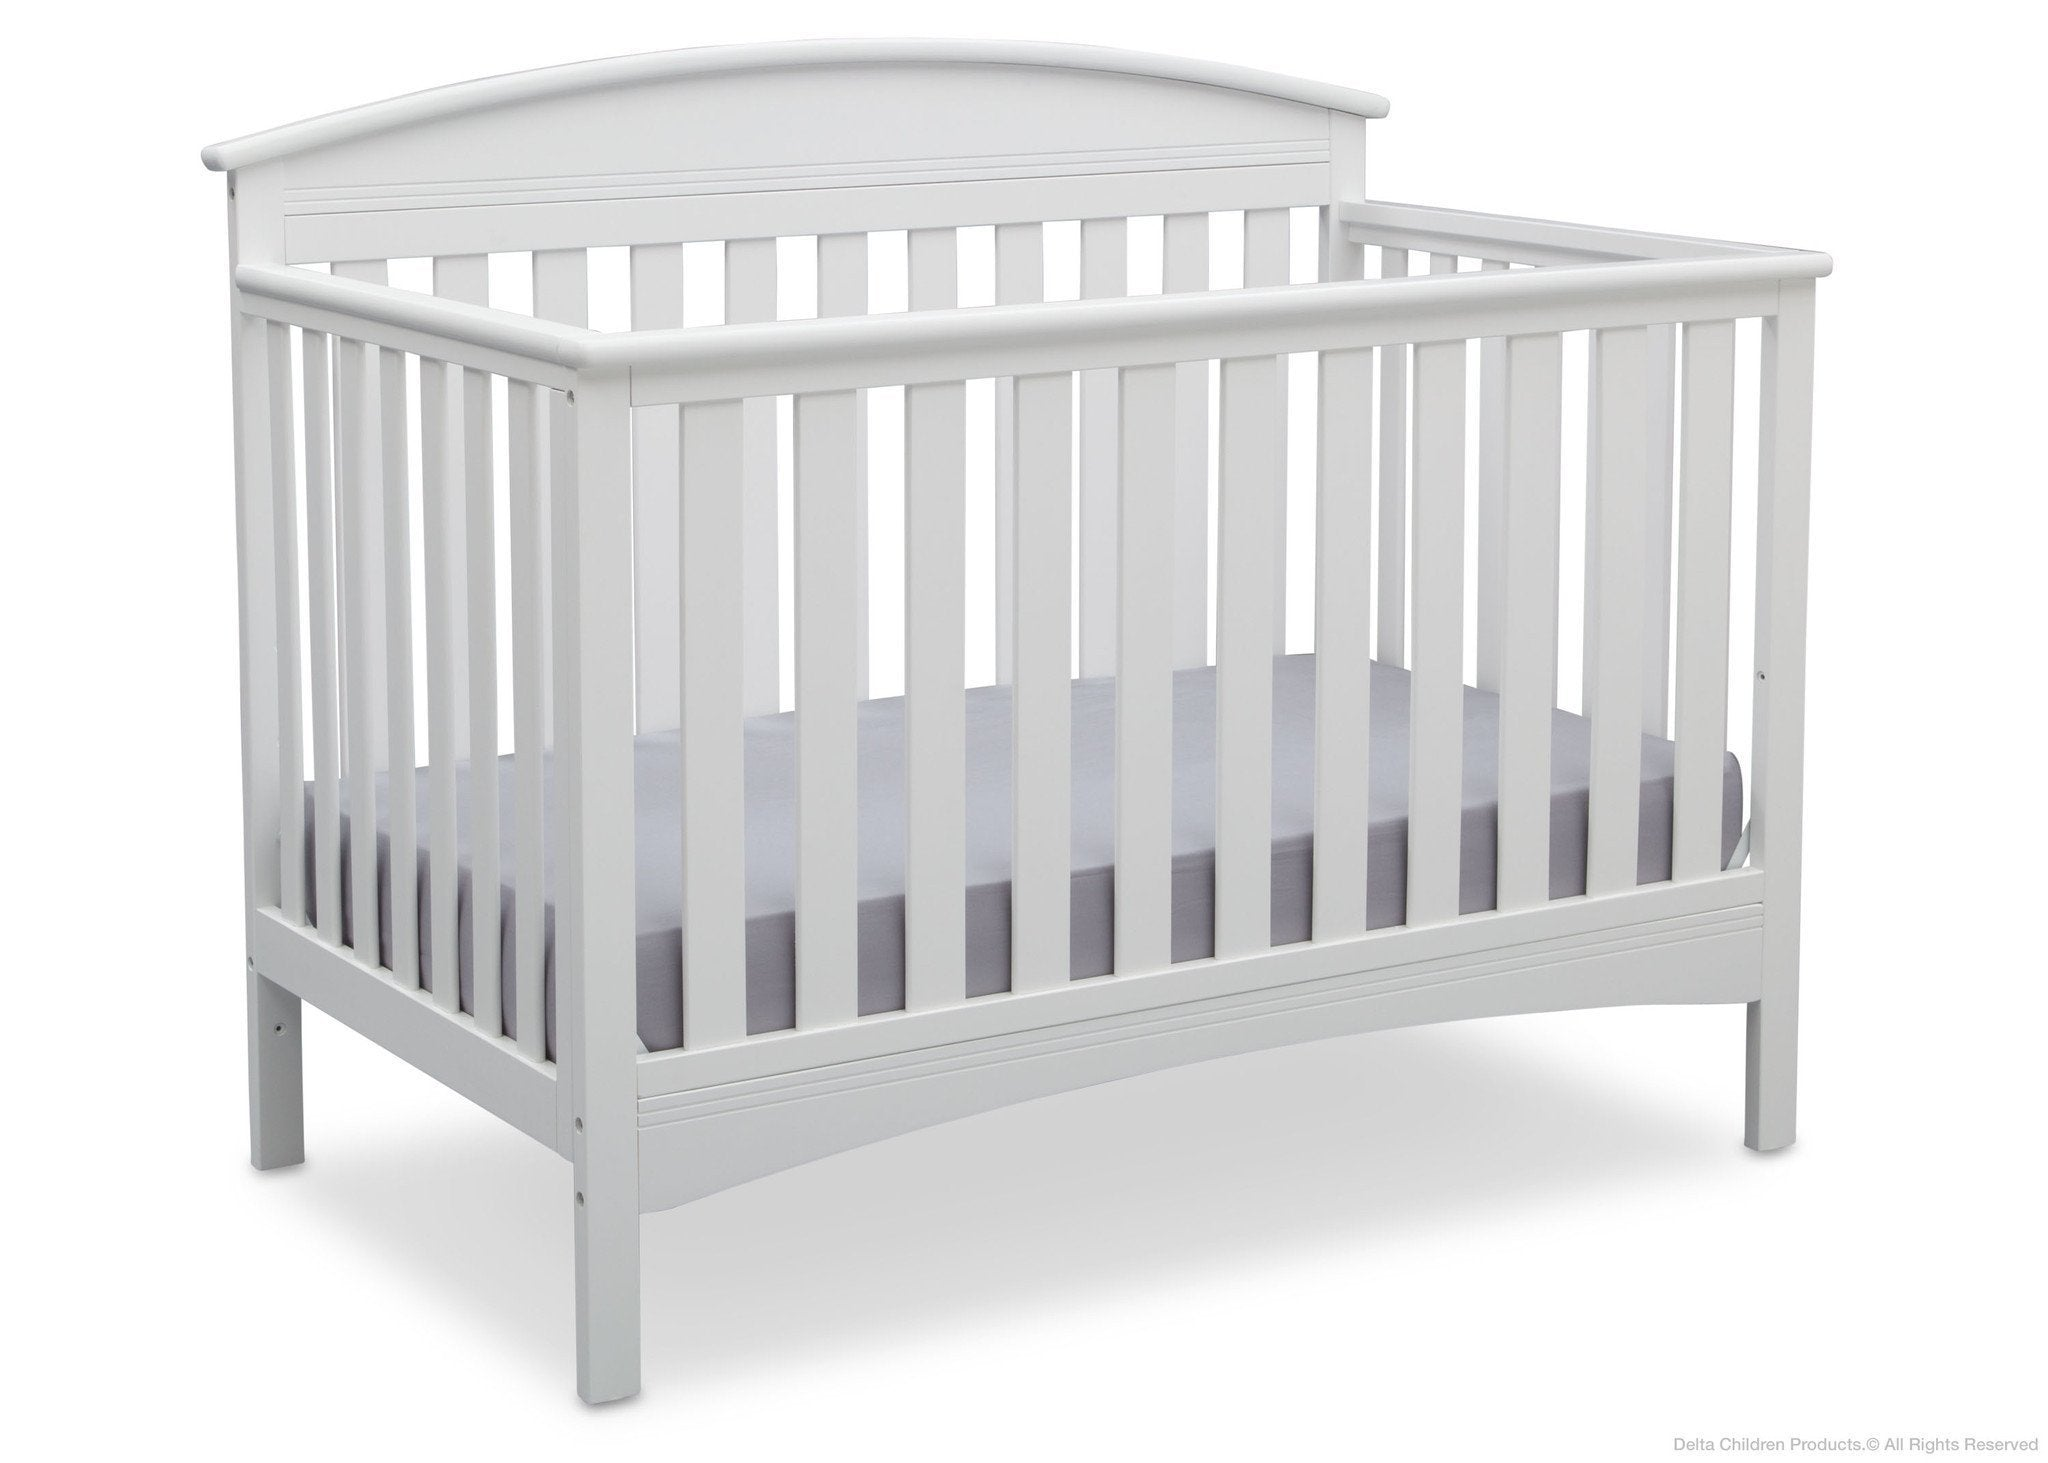 Delta Children Bianca (130) Abby 4-in-1 Crib Side View b3b